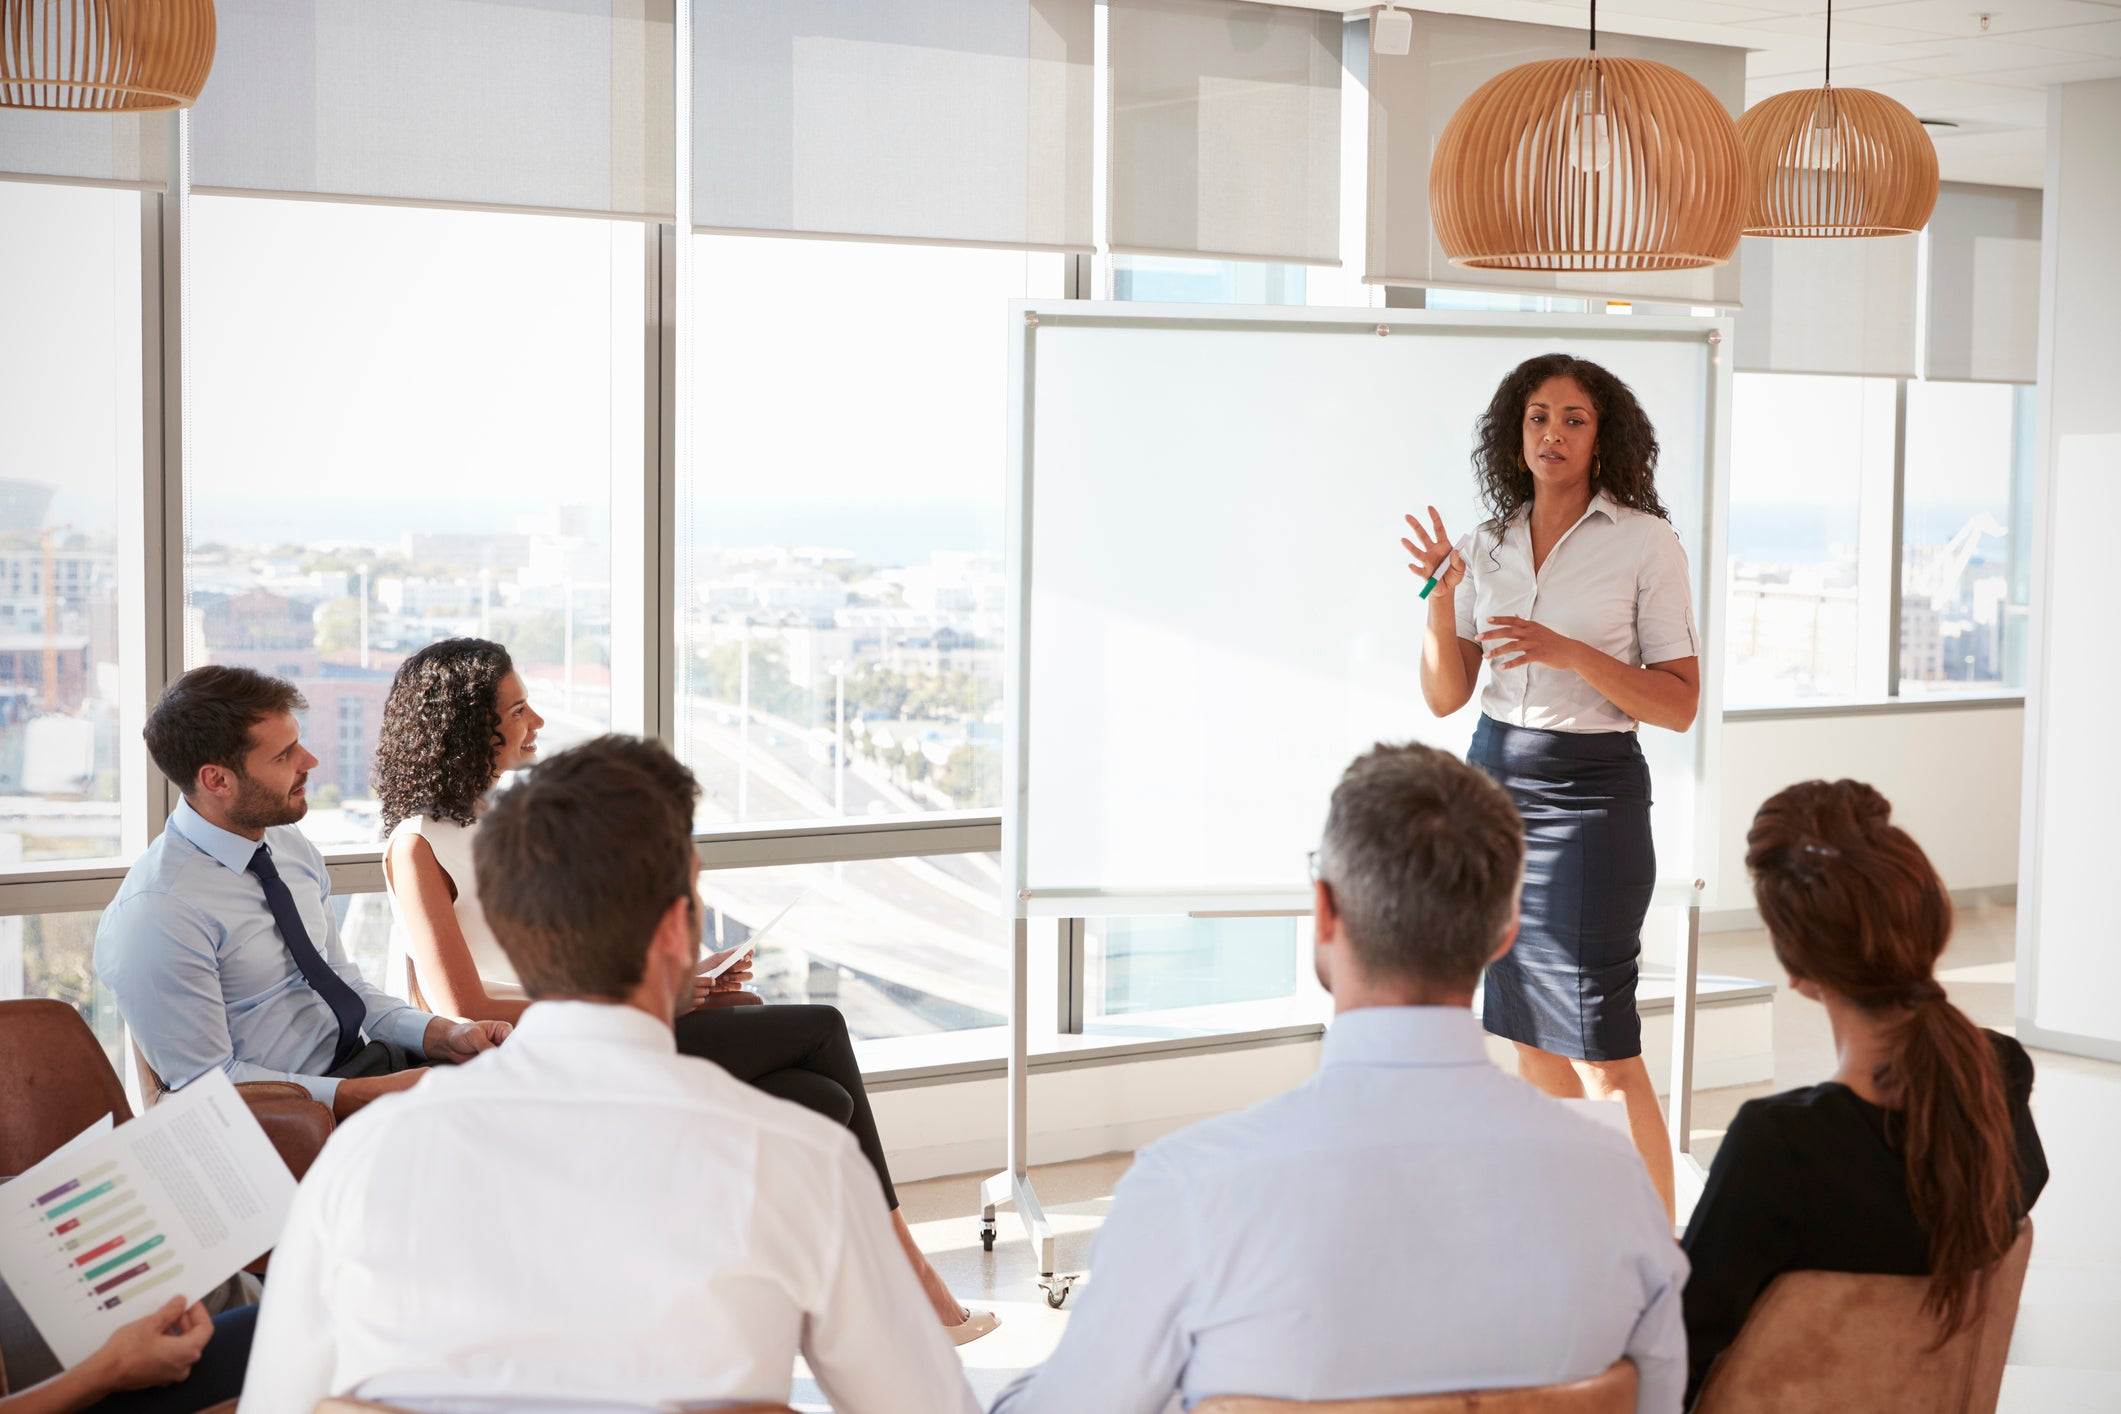 A businesswoman presents to a room of colleagues.